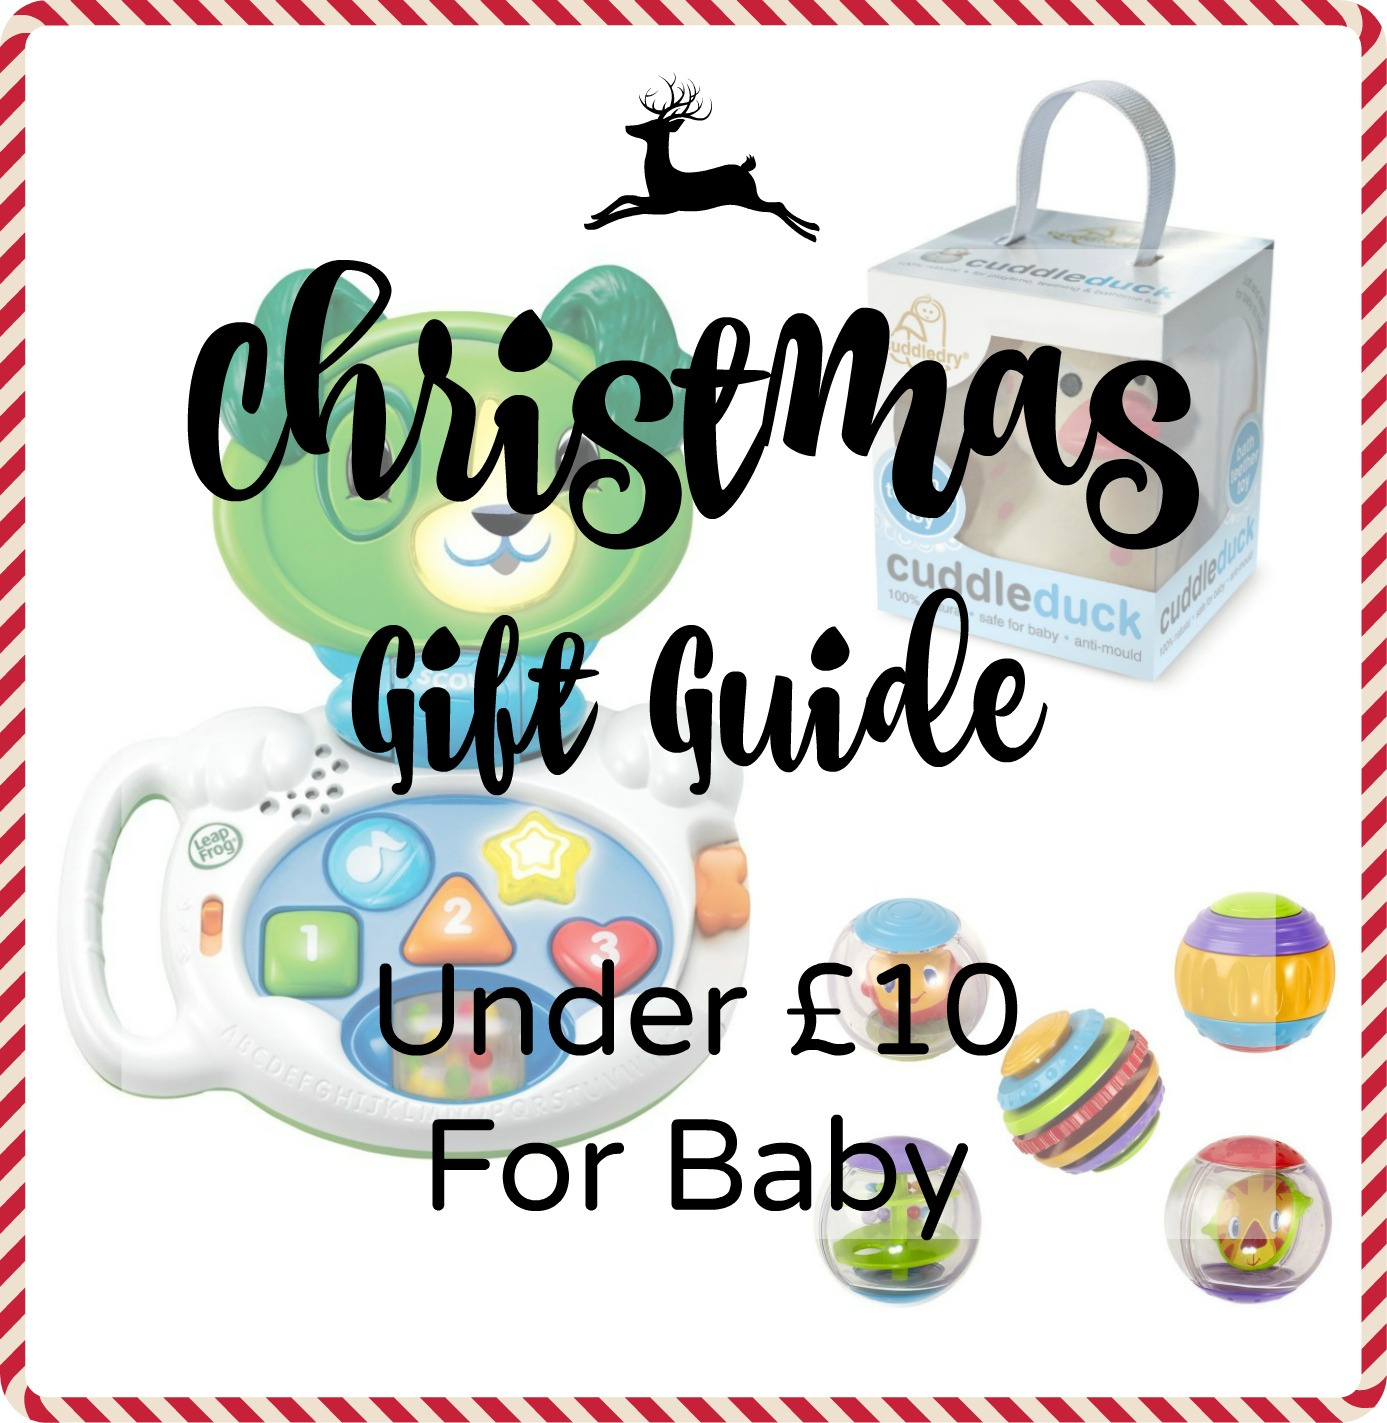 Baby Gift Ideas Under £10 : Christmas gifts under dinner recipes